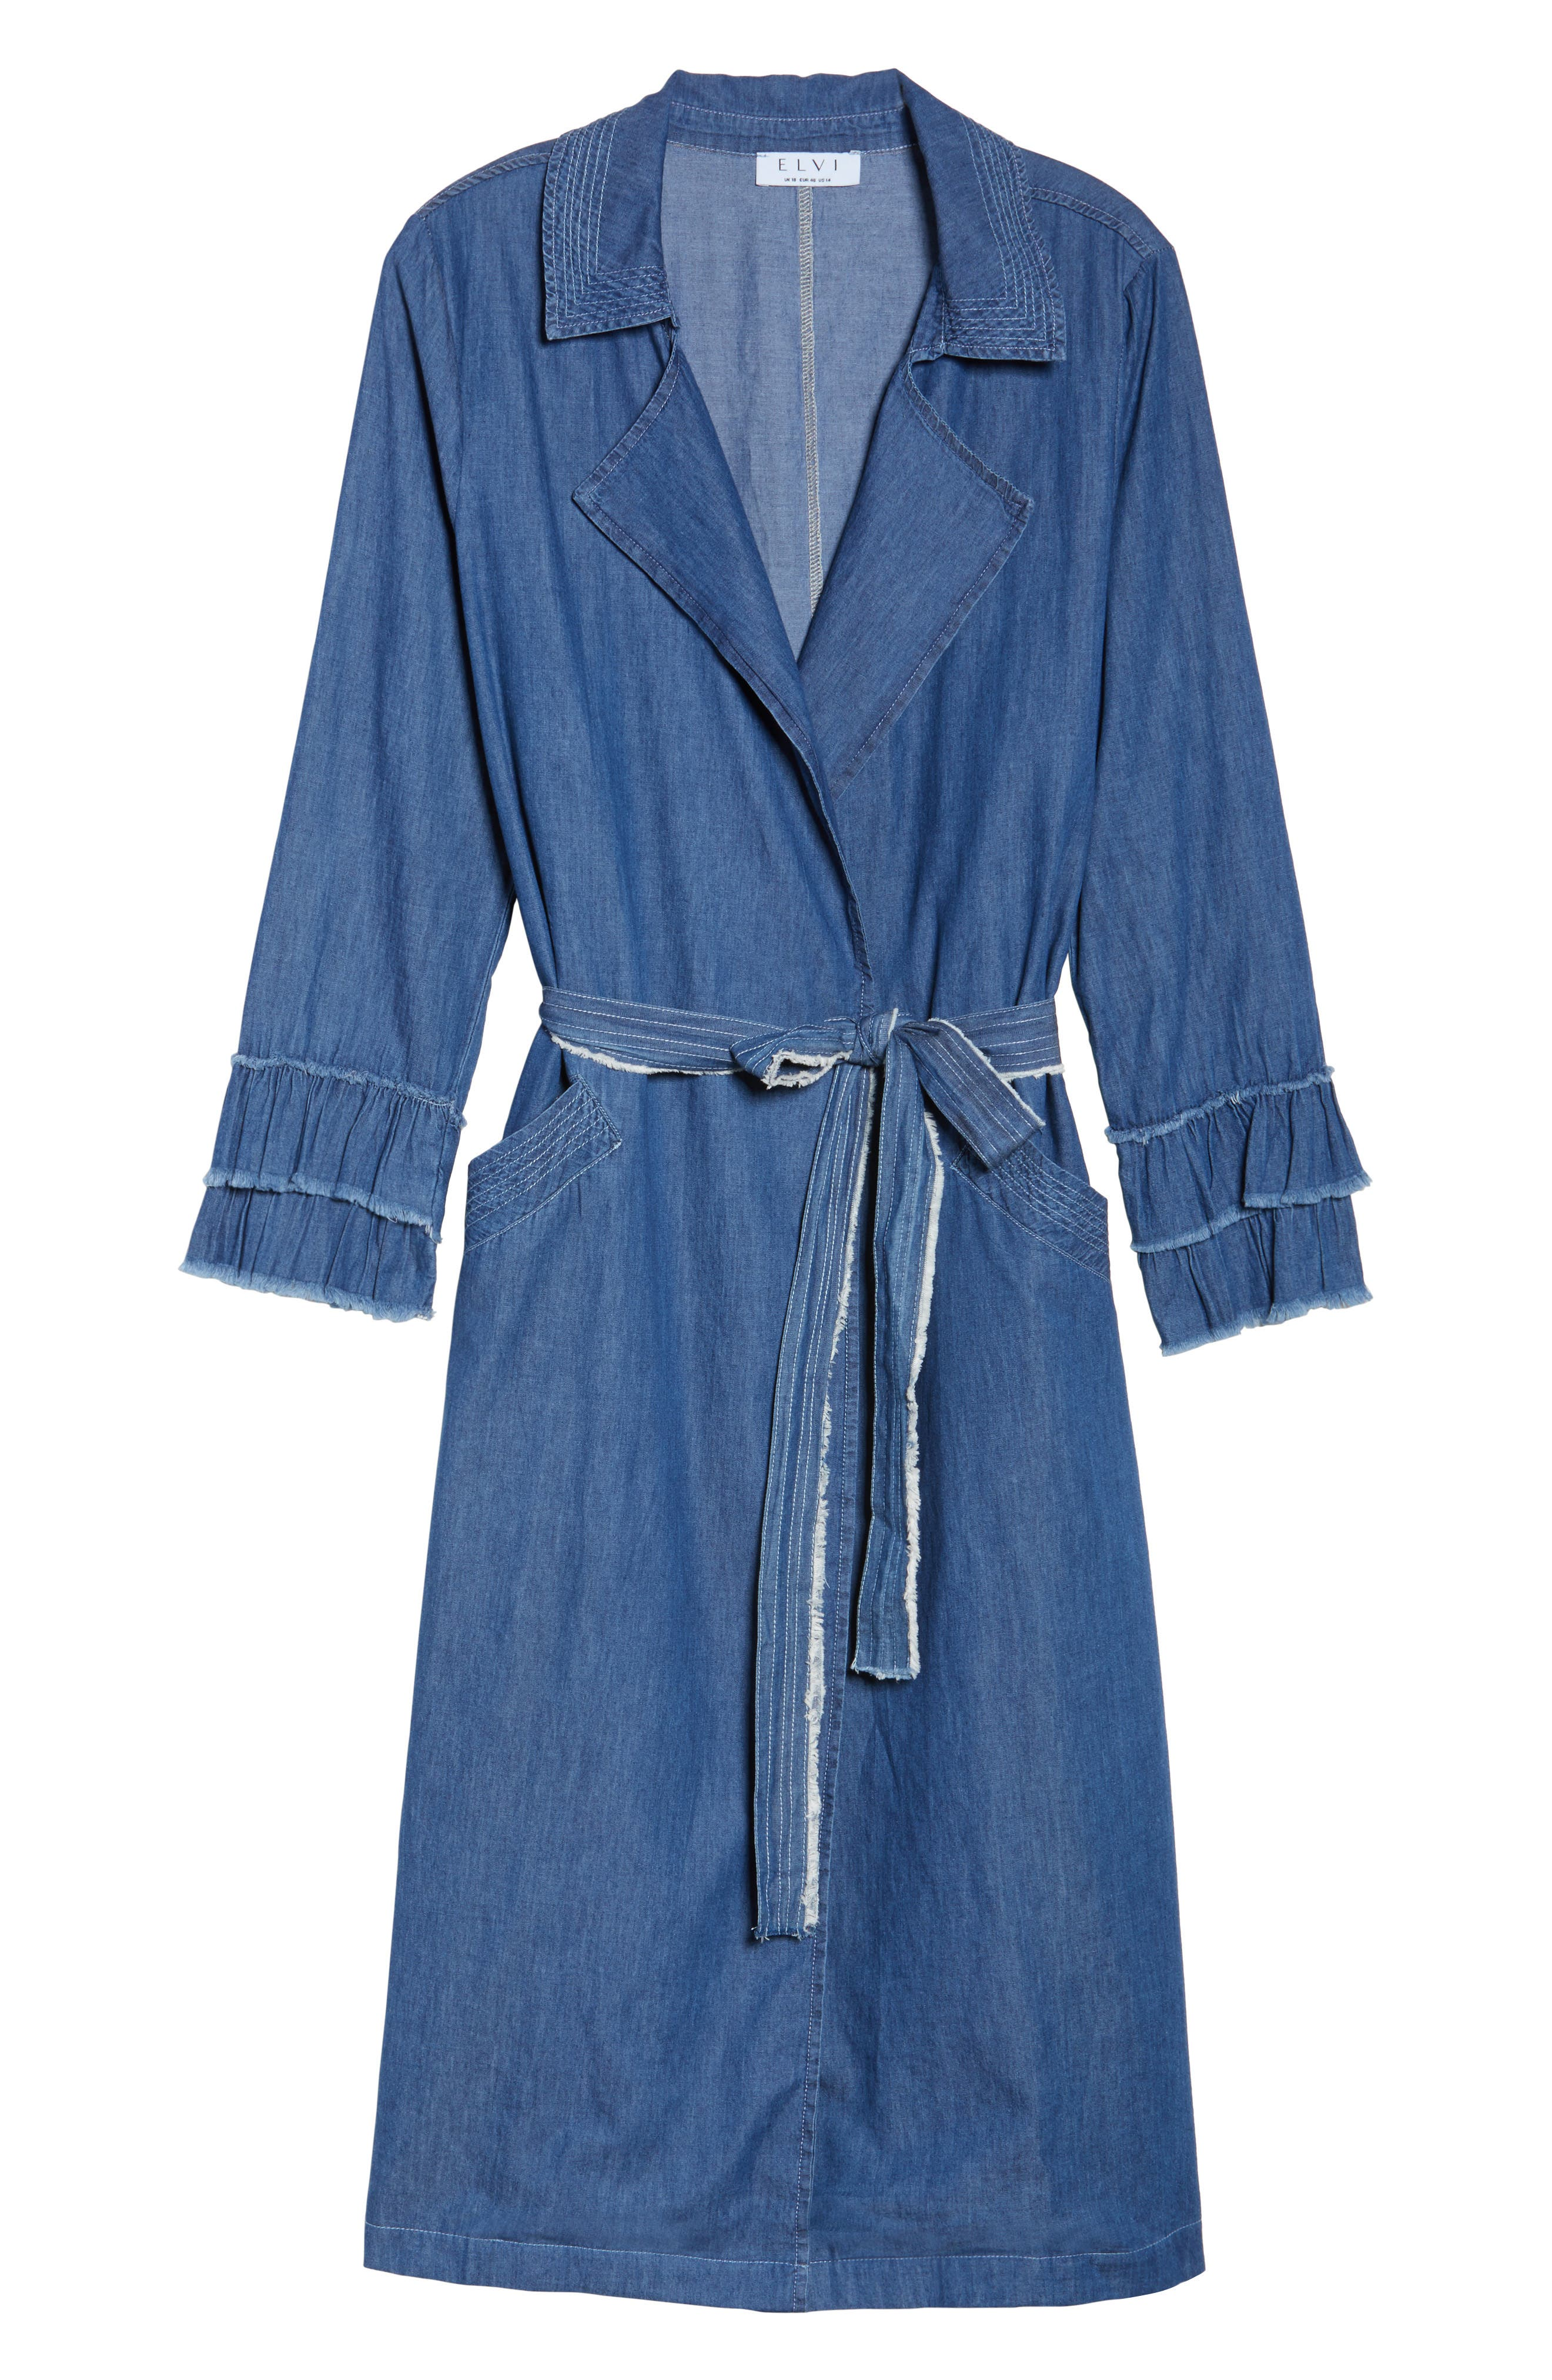 Chambray Trench Coat,                             Alternate thumbnail 5, color,                             400